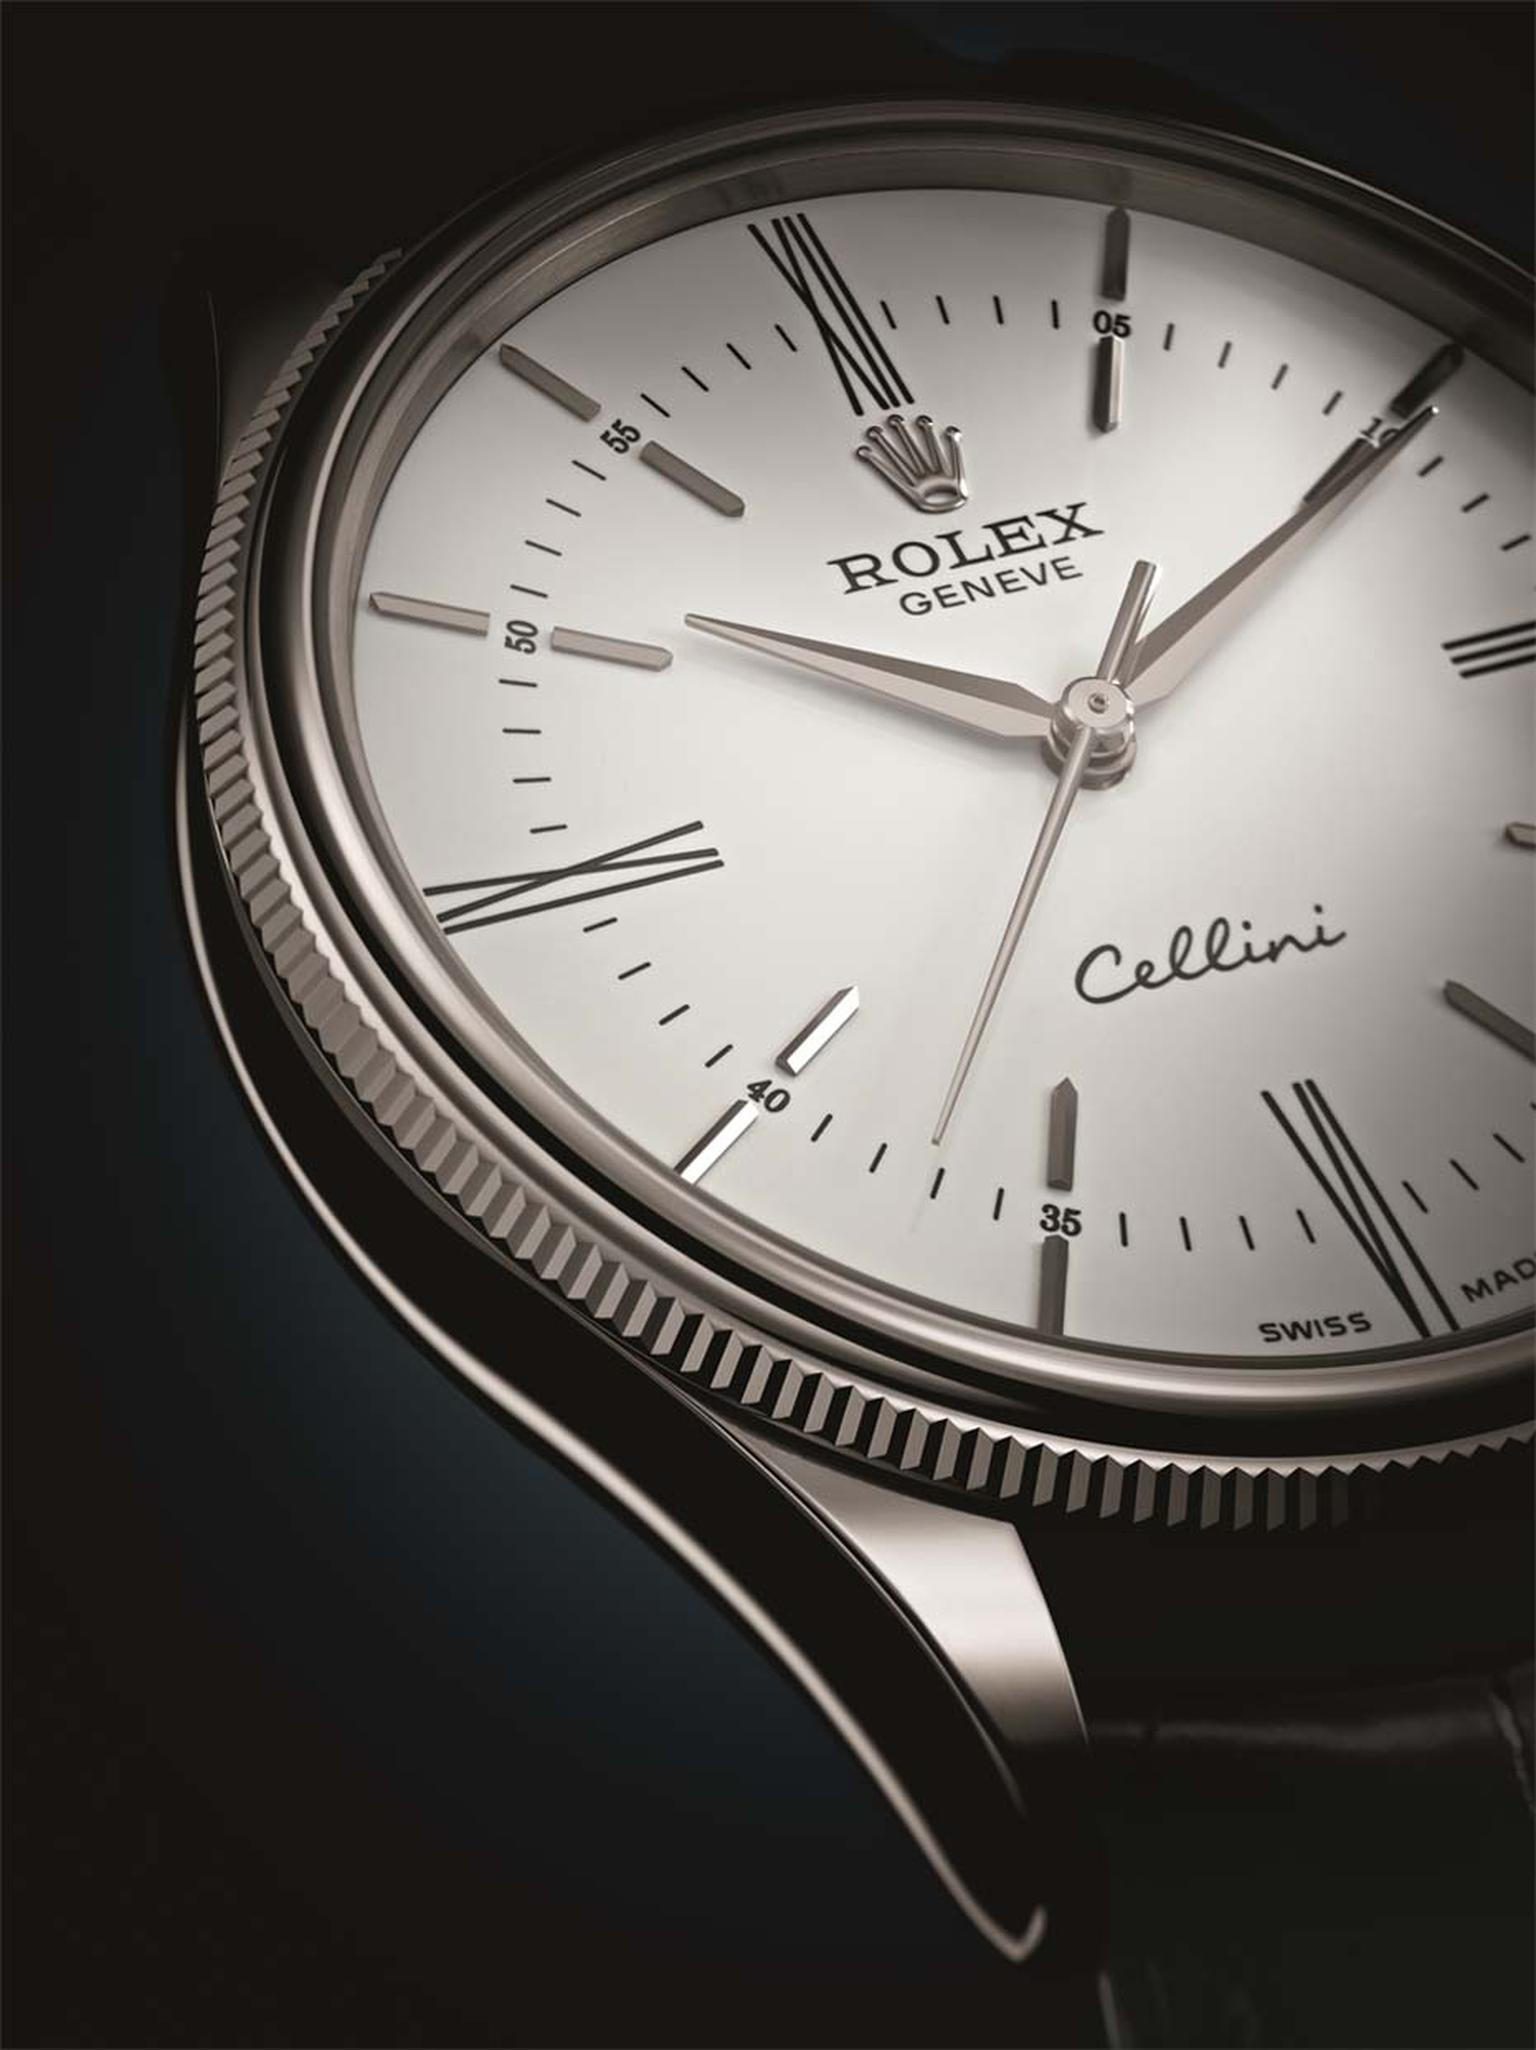 Each Rolex Cellini watch features a 'double bezel' that is part-domed and part-fluted